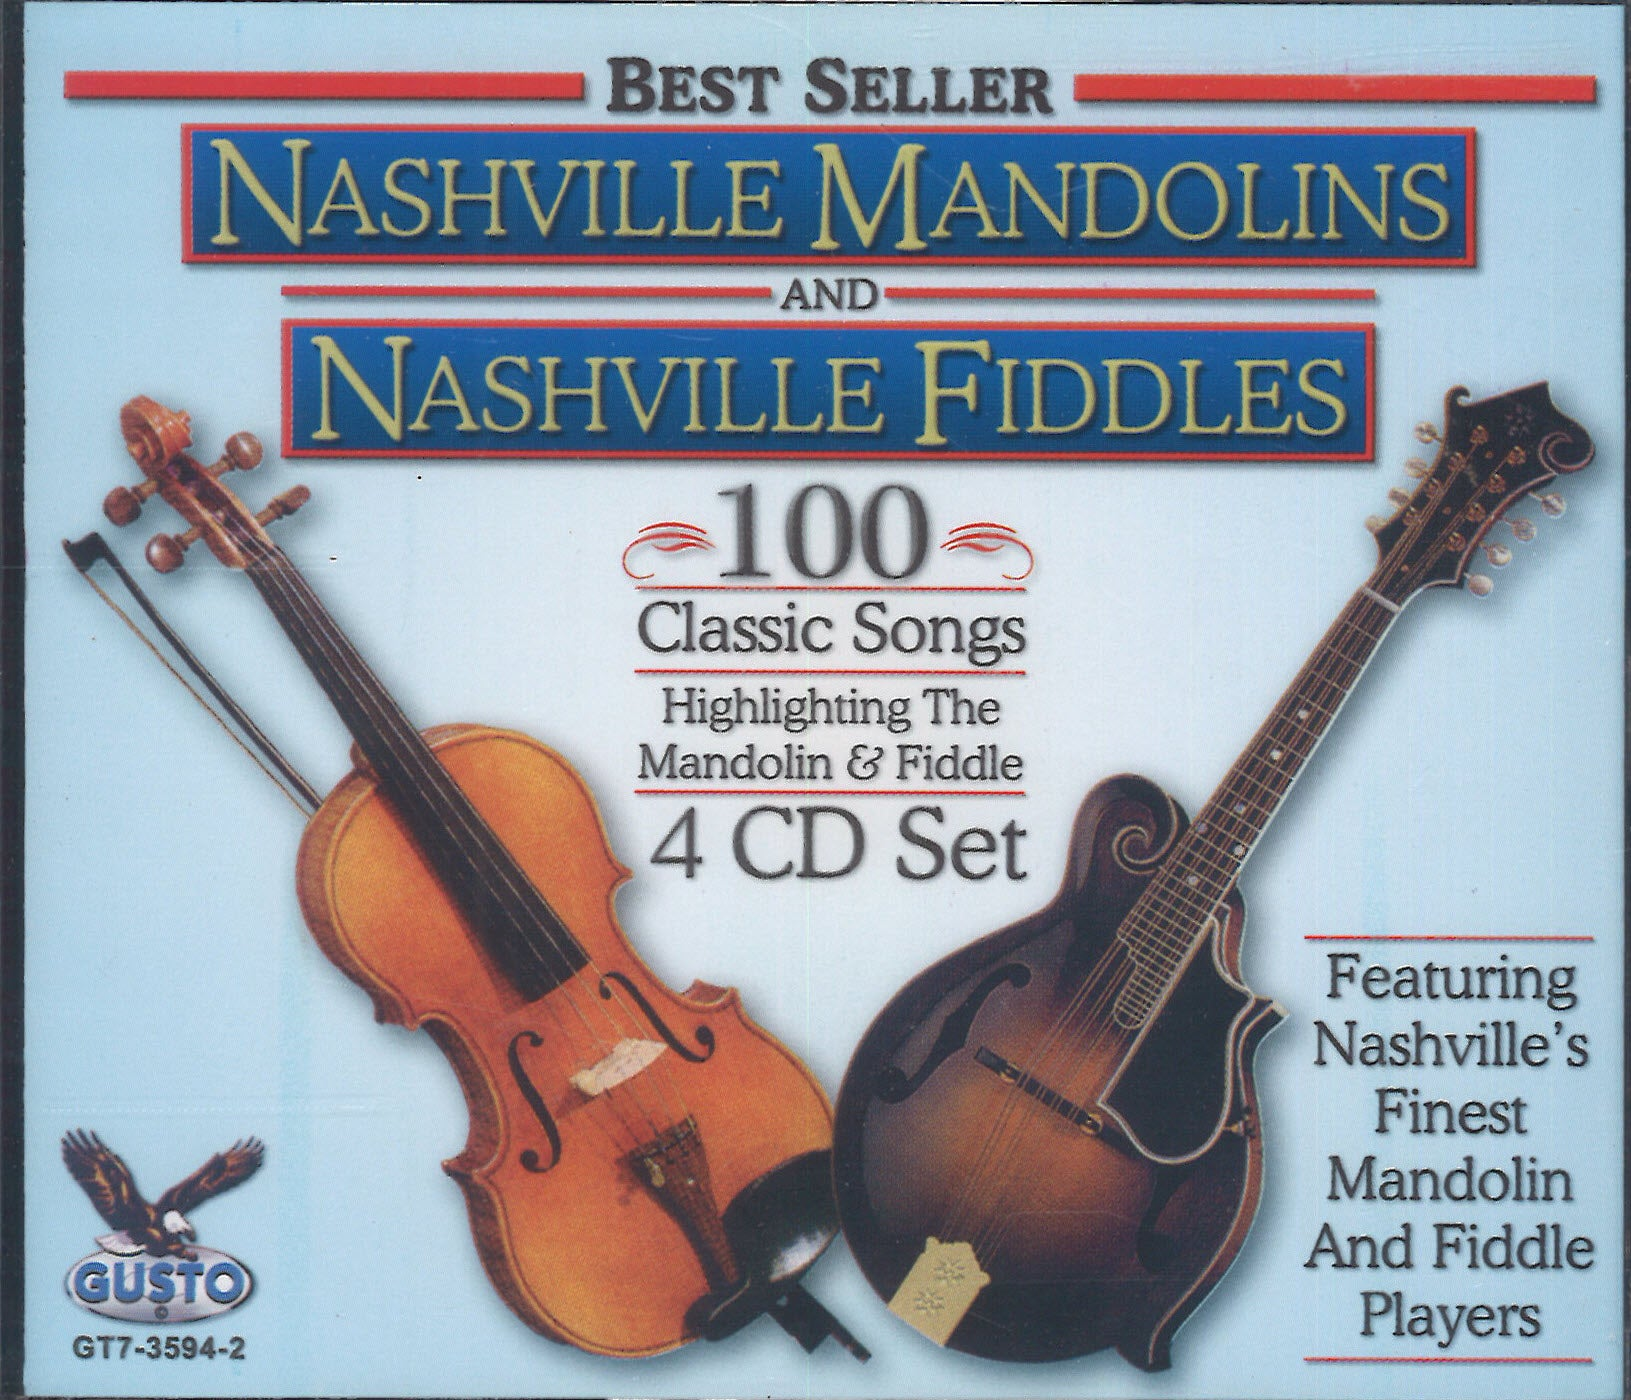 Nashville Mandolins & Nashville Fiddles 100 Classic Songs: 4 CD Set